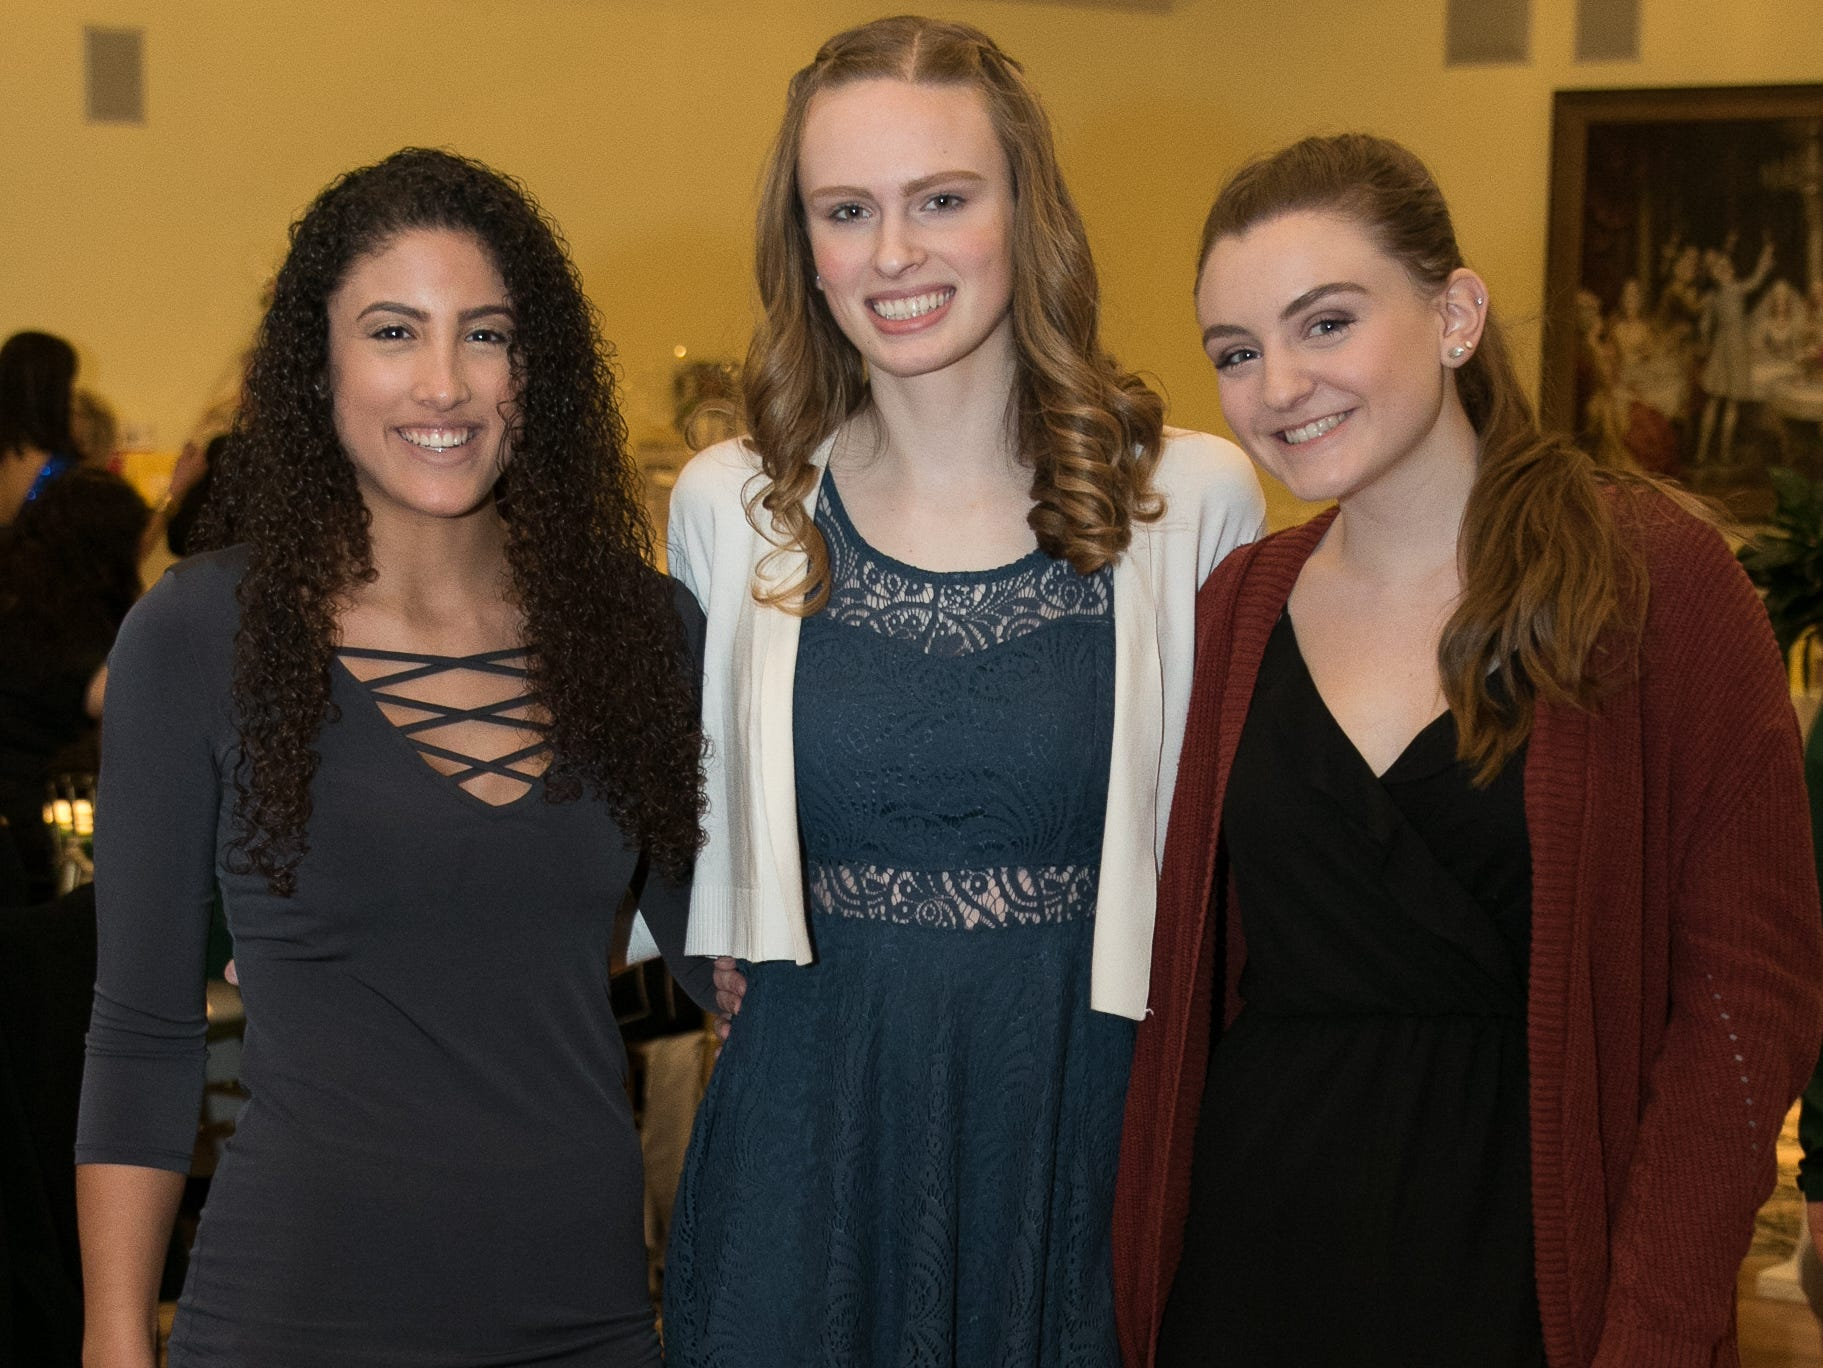 Emilie Ghalam, Gillian Luberoff, Mackenzie Kamp. The Midland Park Ramapo Eisenhower React/ Interact Clubs held it's sixth Annual fashion show and tricky tray at The Brick House in Wyckoff. 01/27/2019